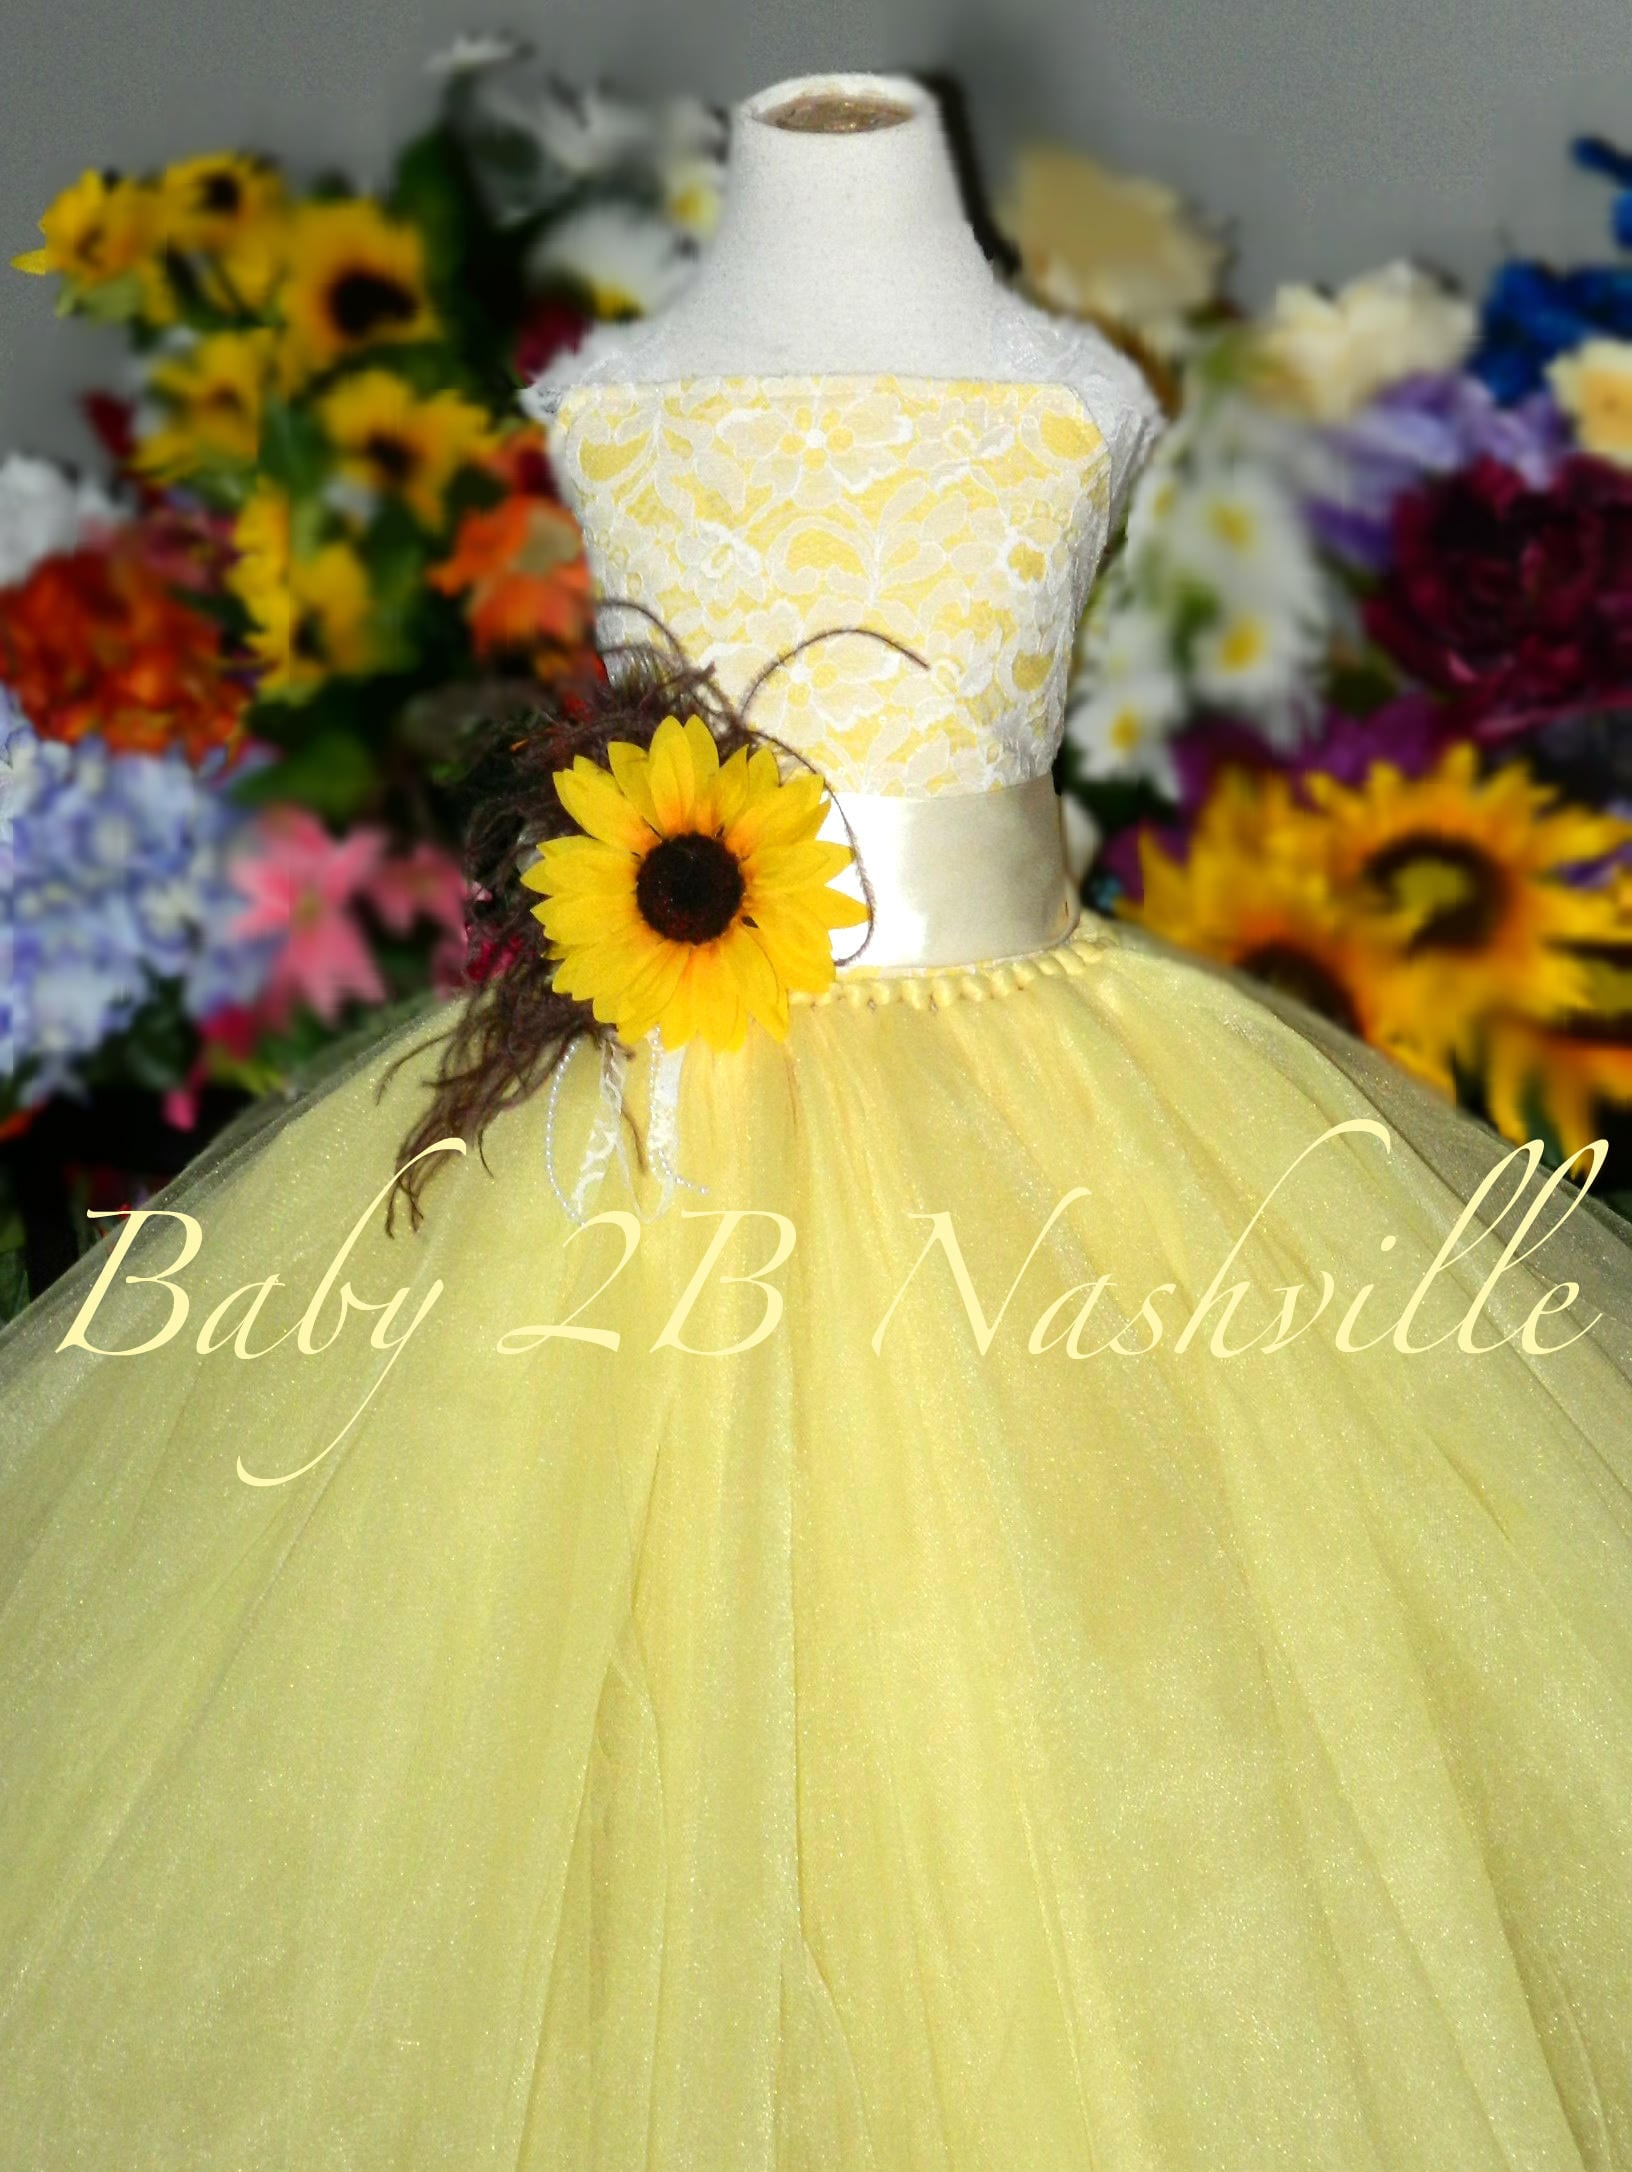 Sunflower dress maize yellow dress flower girl dress lace dress sunflower dress maize yellow dress flower girl dress lace dress summer dress baby dress toddler dress girls dress mightylinksfo